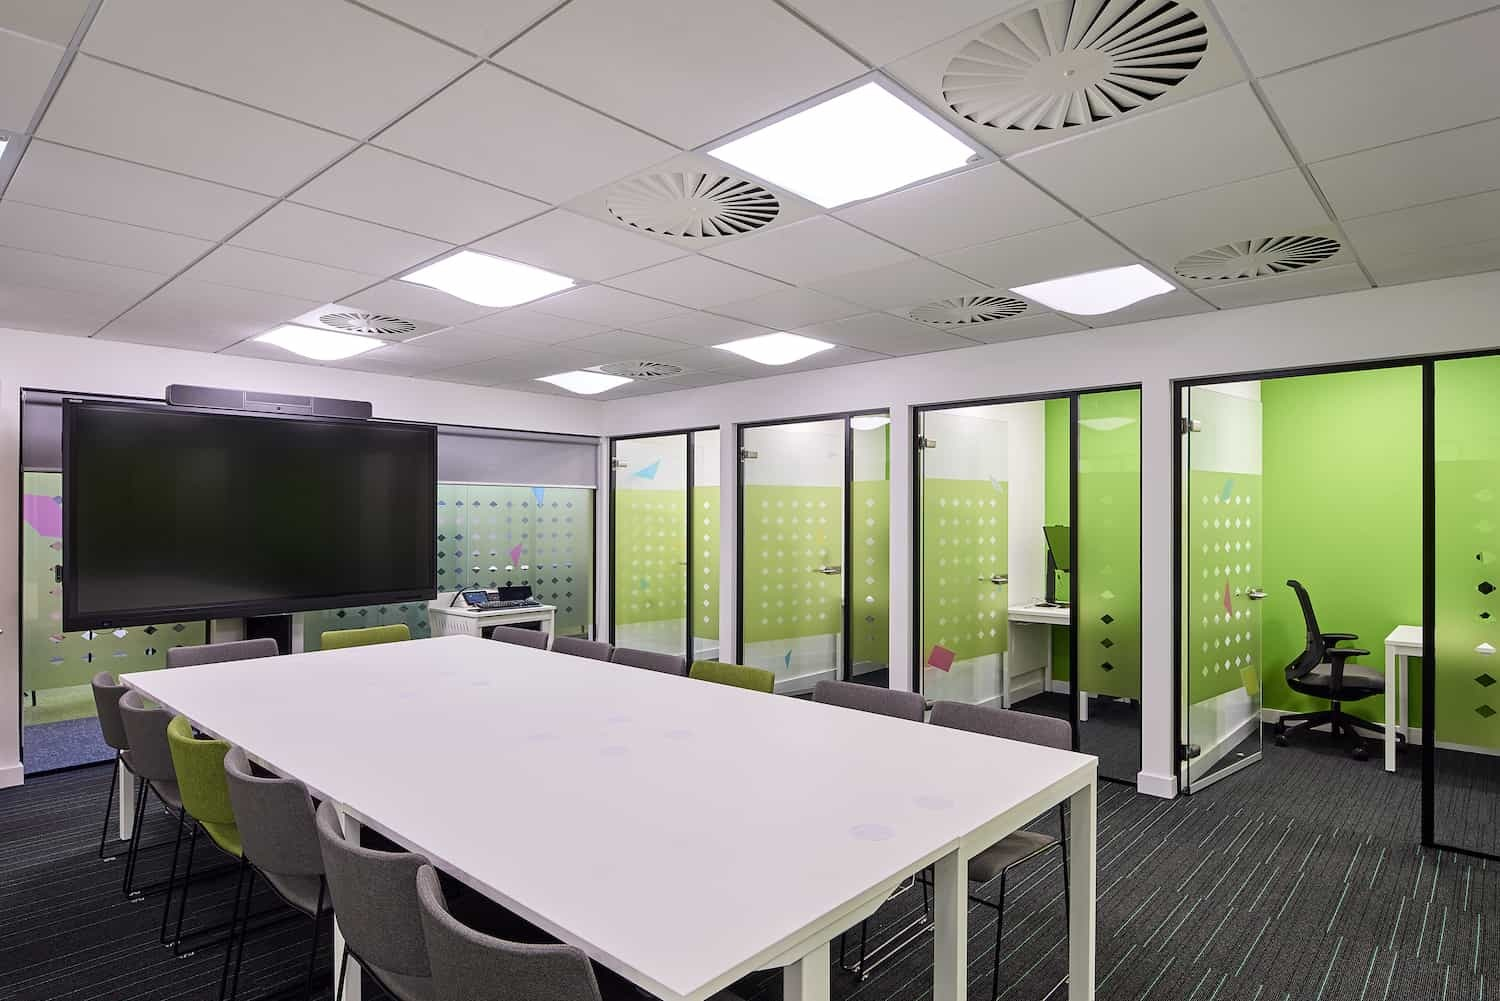 University fit out and refurbishment